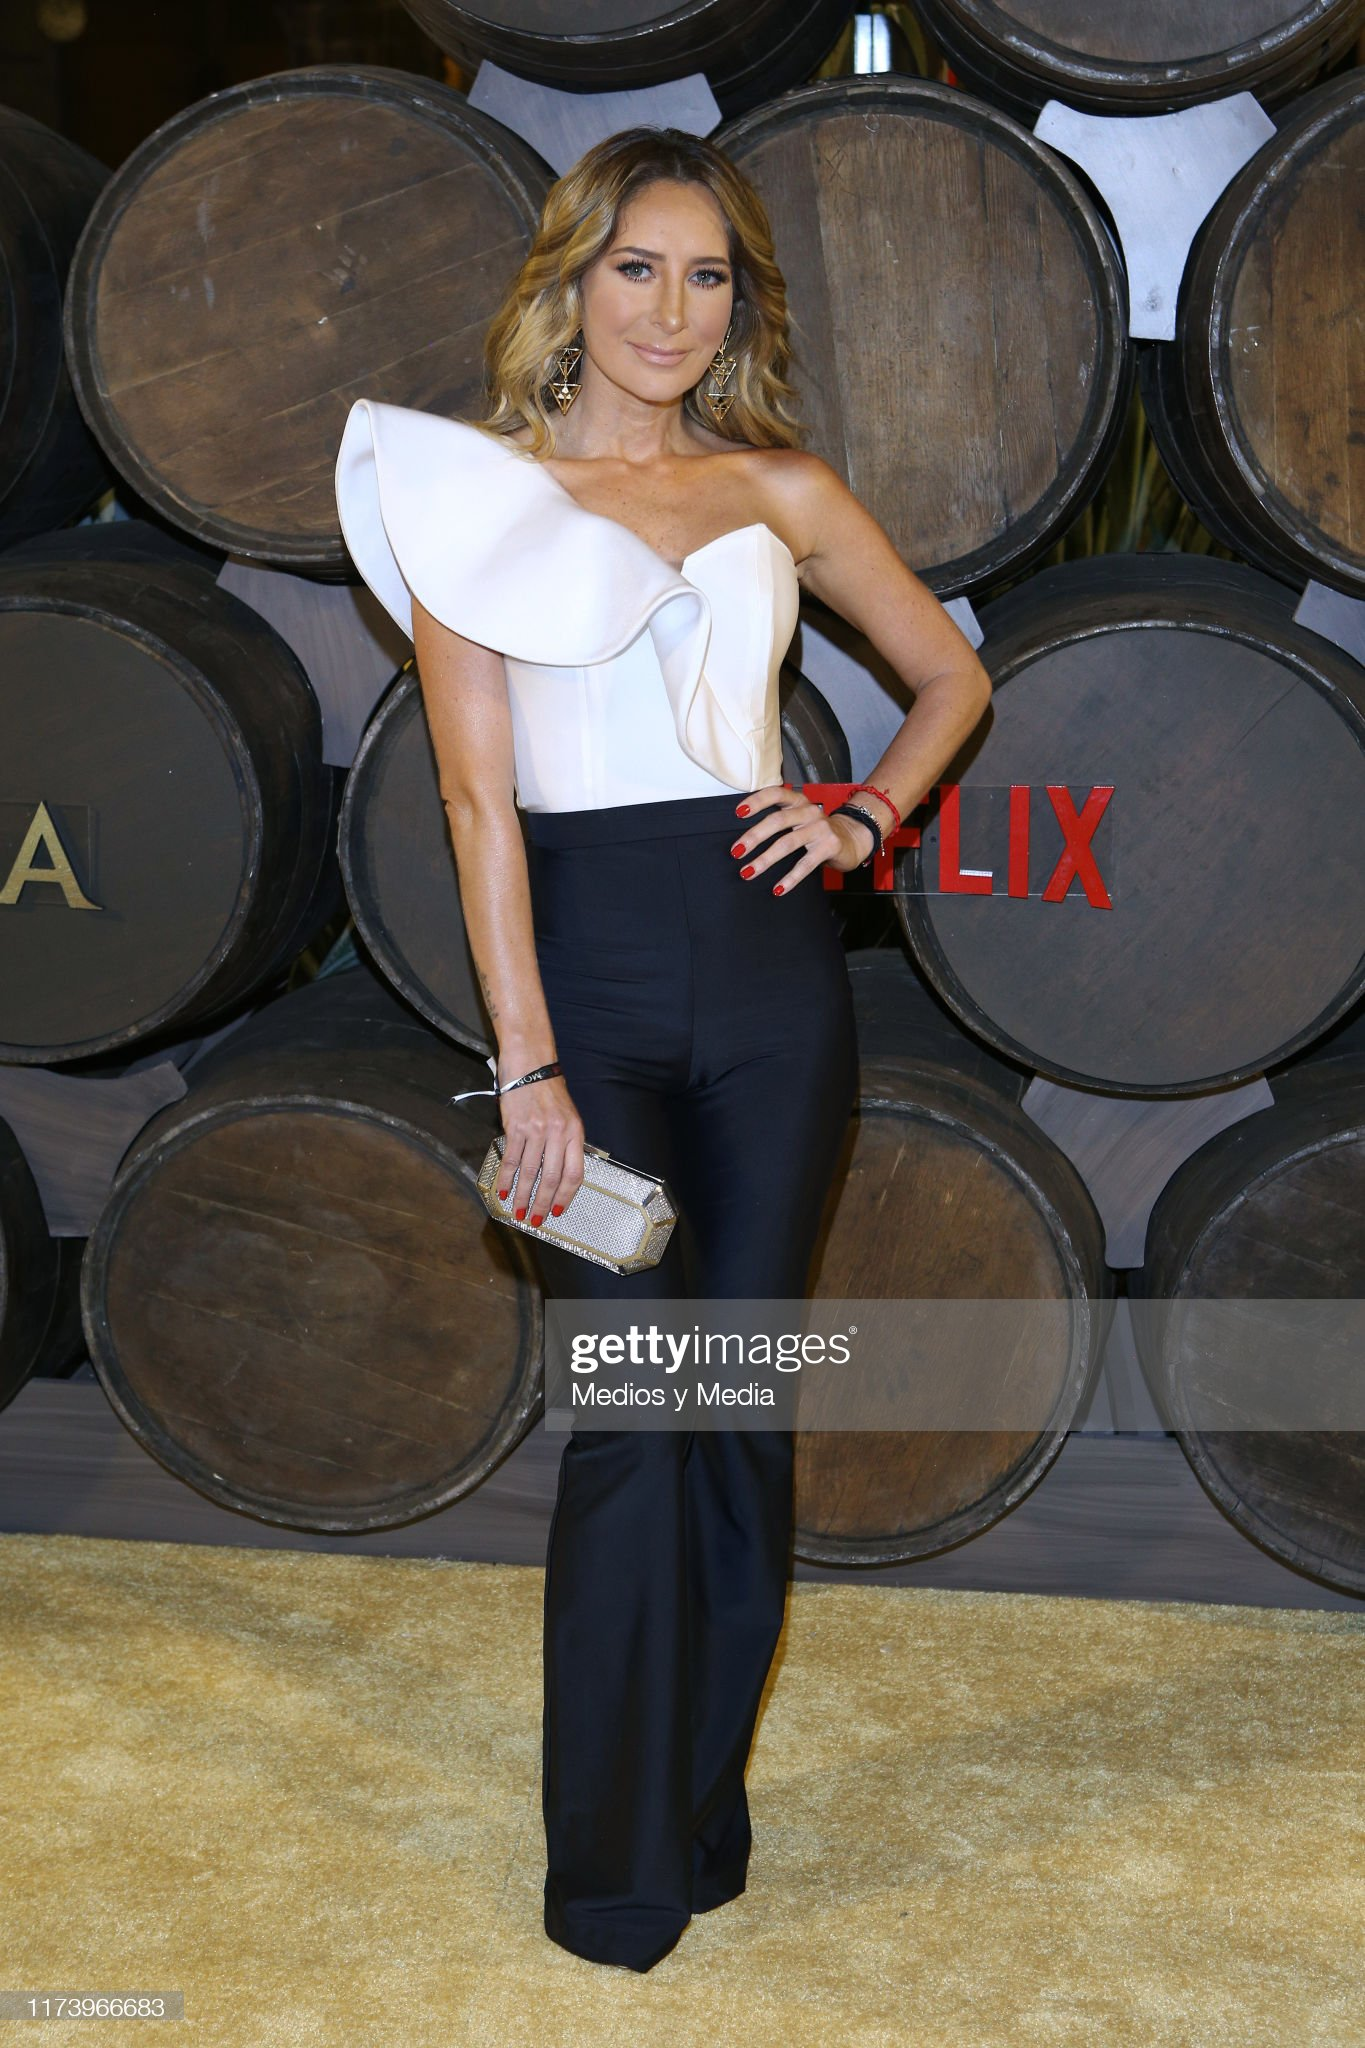 https://media.gettyimages.com/photos/geraldine-bazn-poses-for-photos-during-the-red-carpet-of-the-new-picture-id1173966683?s=2048x2048